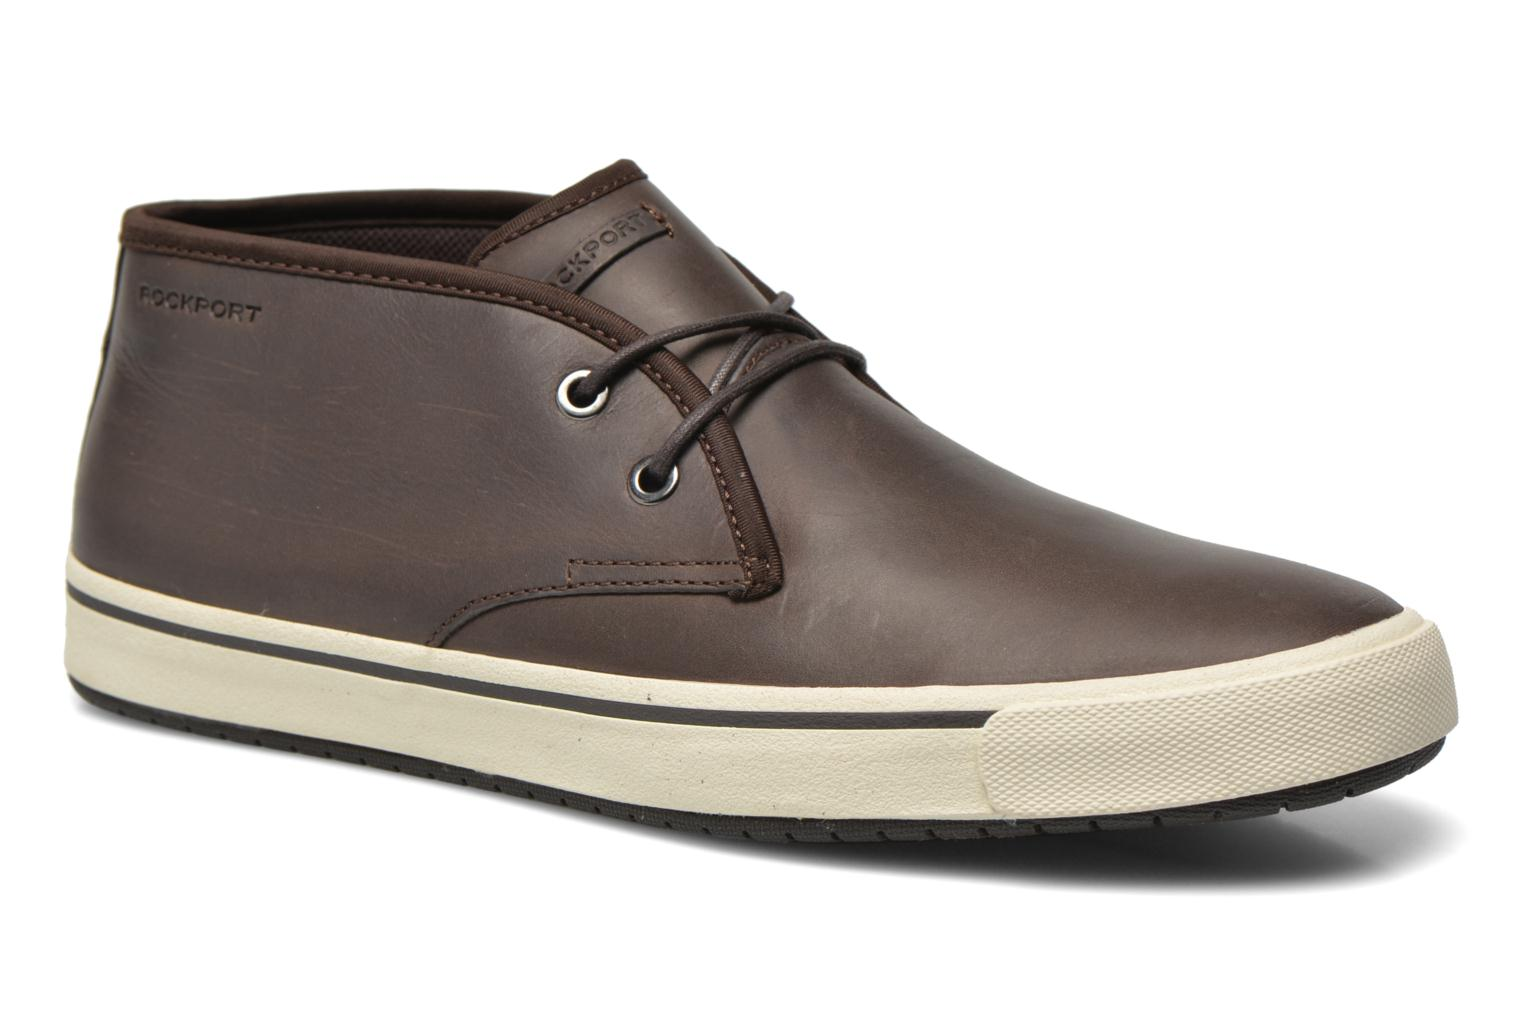 Sneakers PTG Chukka by Rockport